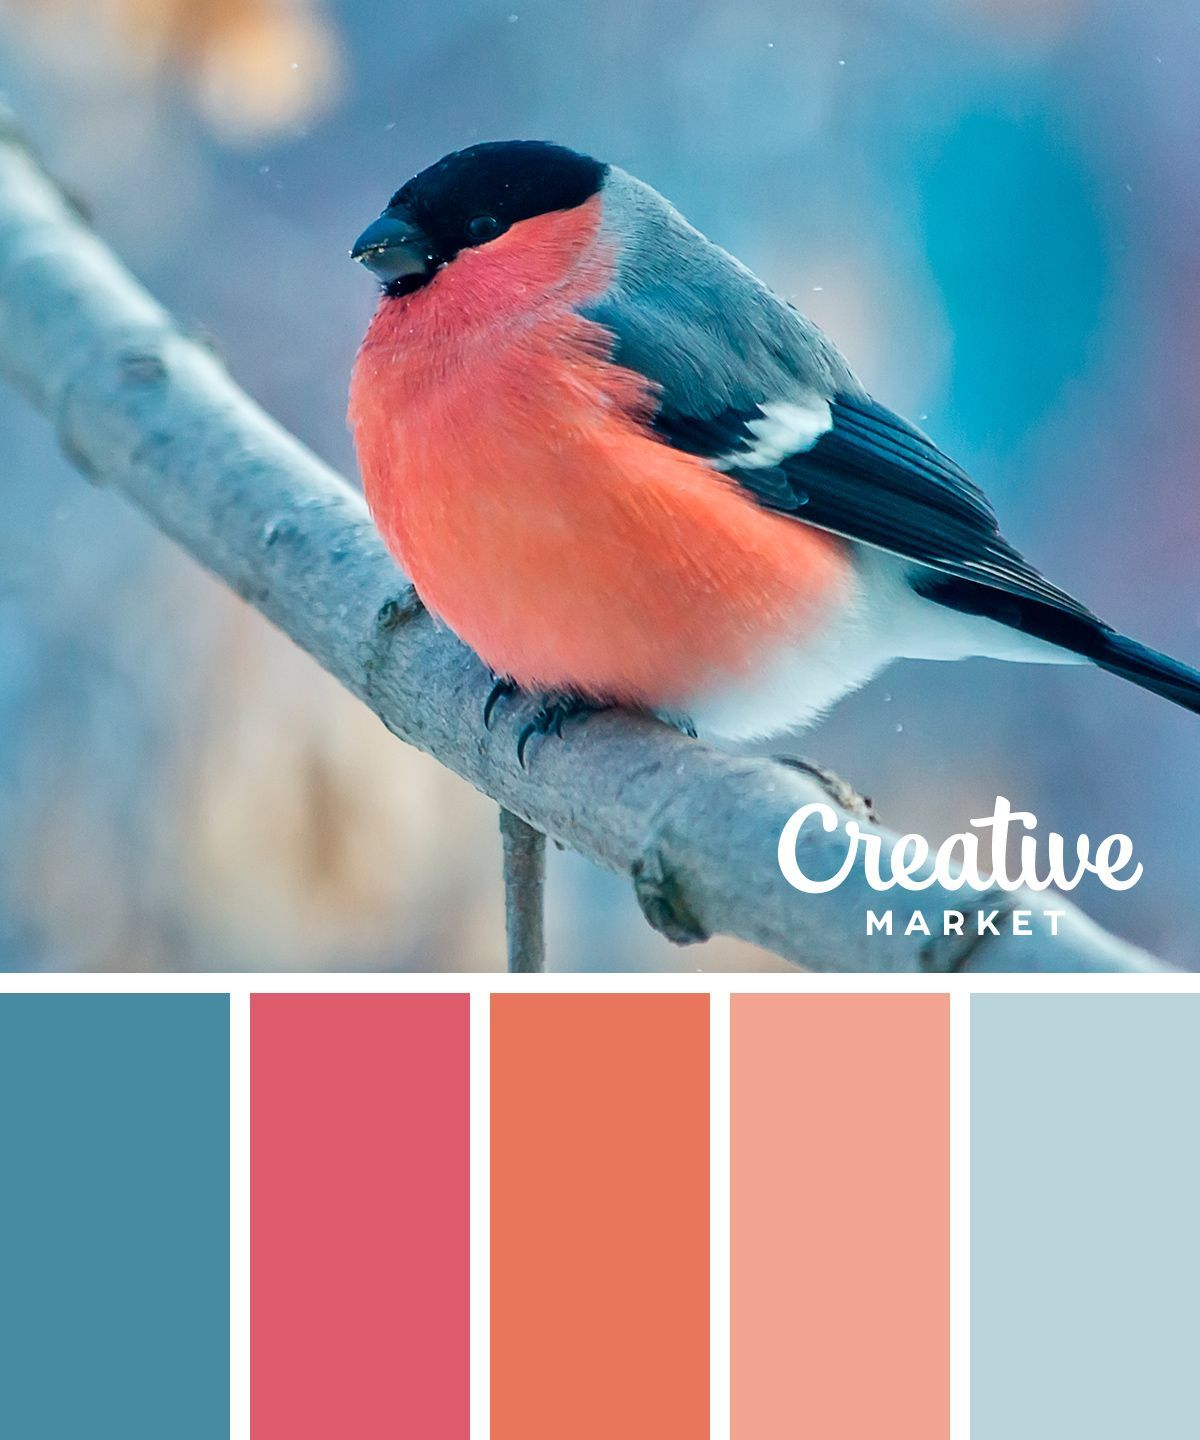 On the Creative Market Blog - 15 Downloadable Color Palettes For Winter #DIYHomeDecorArt #livingroomcolorschemeideas